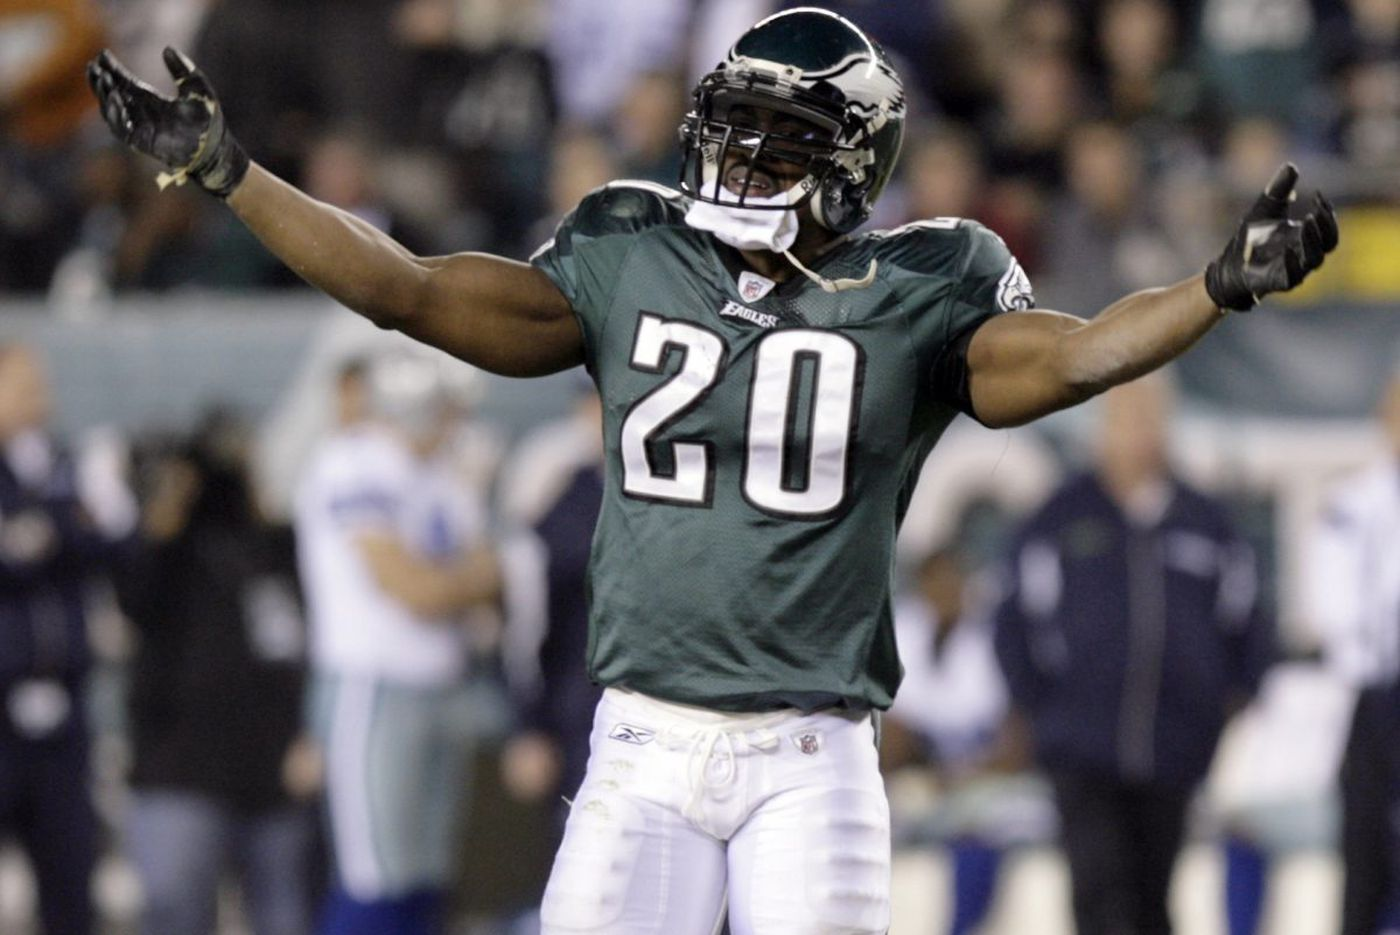 Brian Dawkins, Terrell Owens are Hall of Fame finalists once again